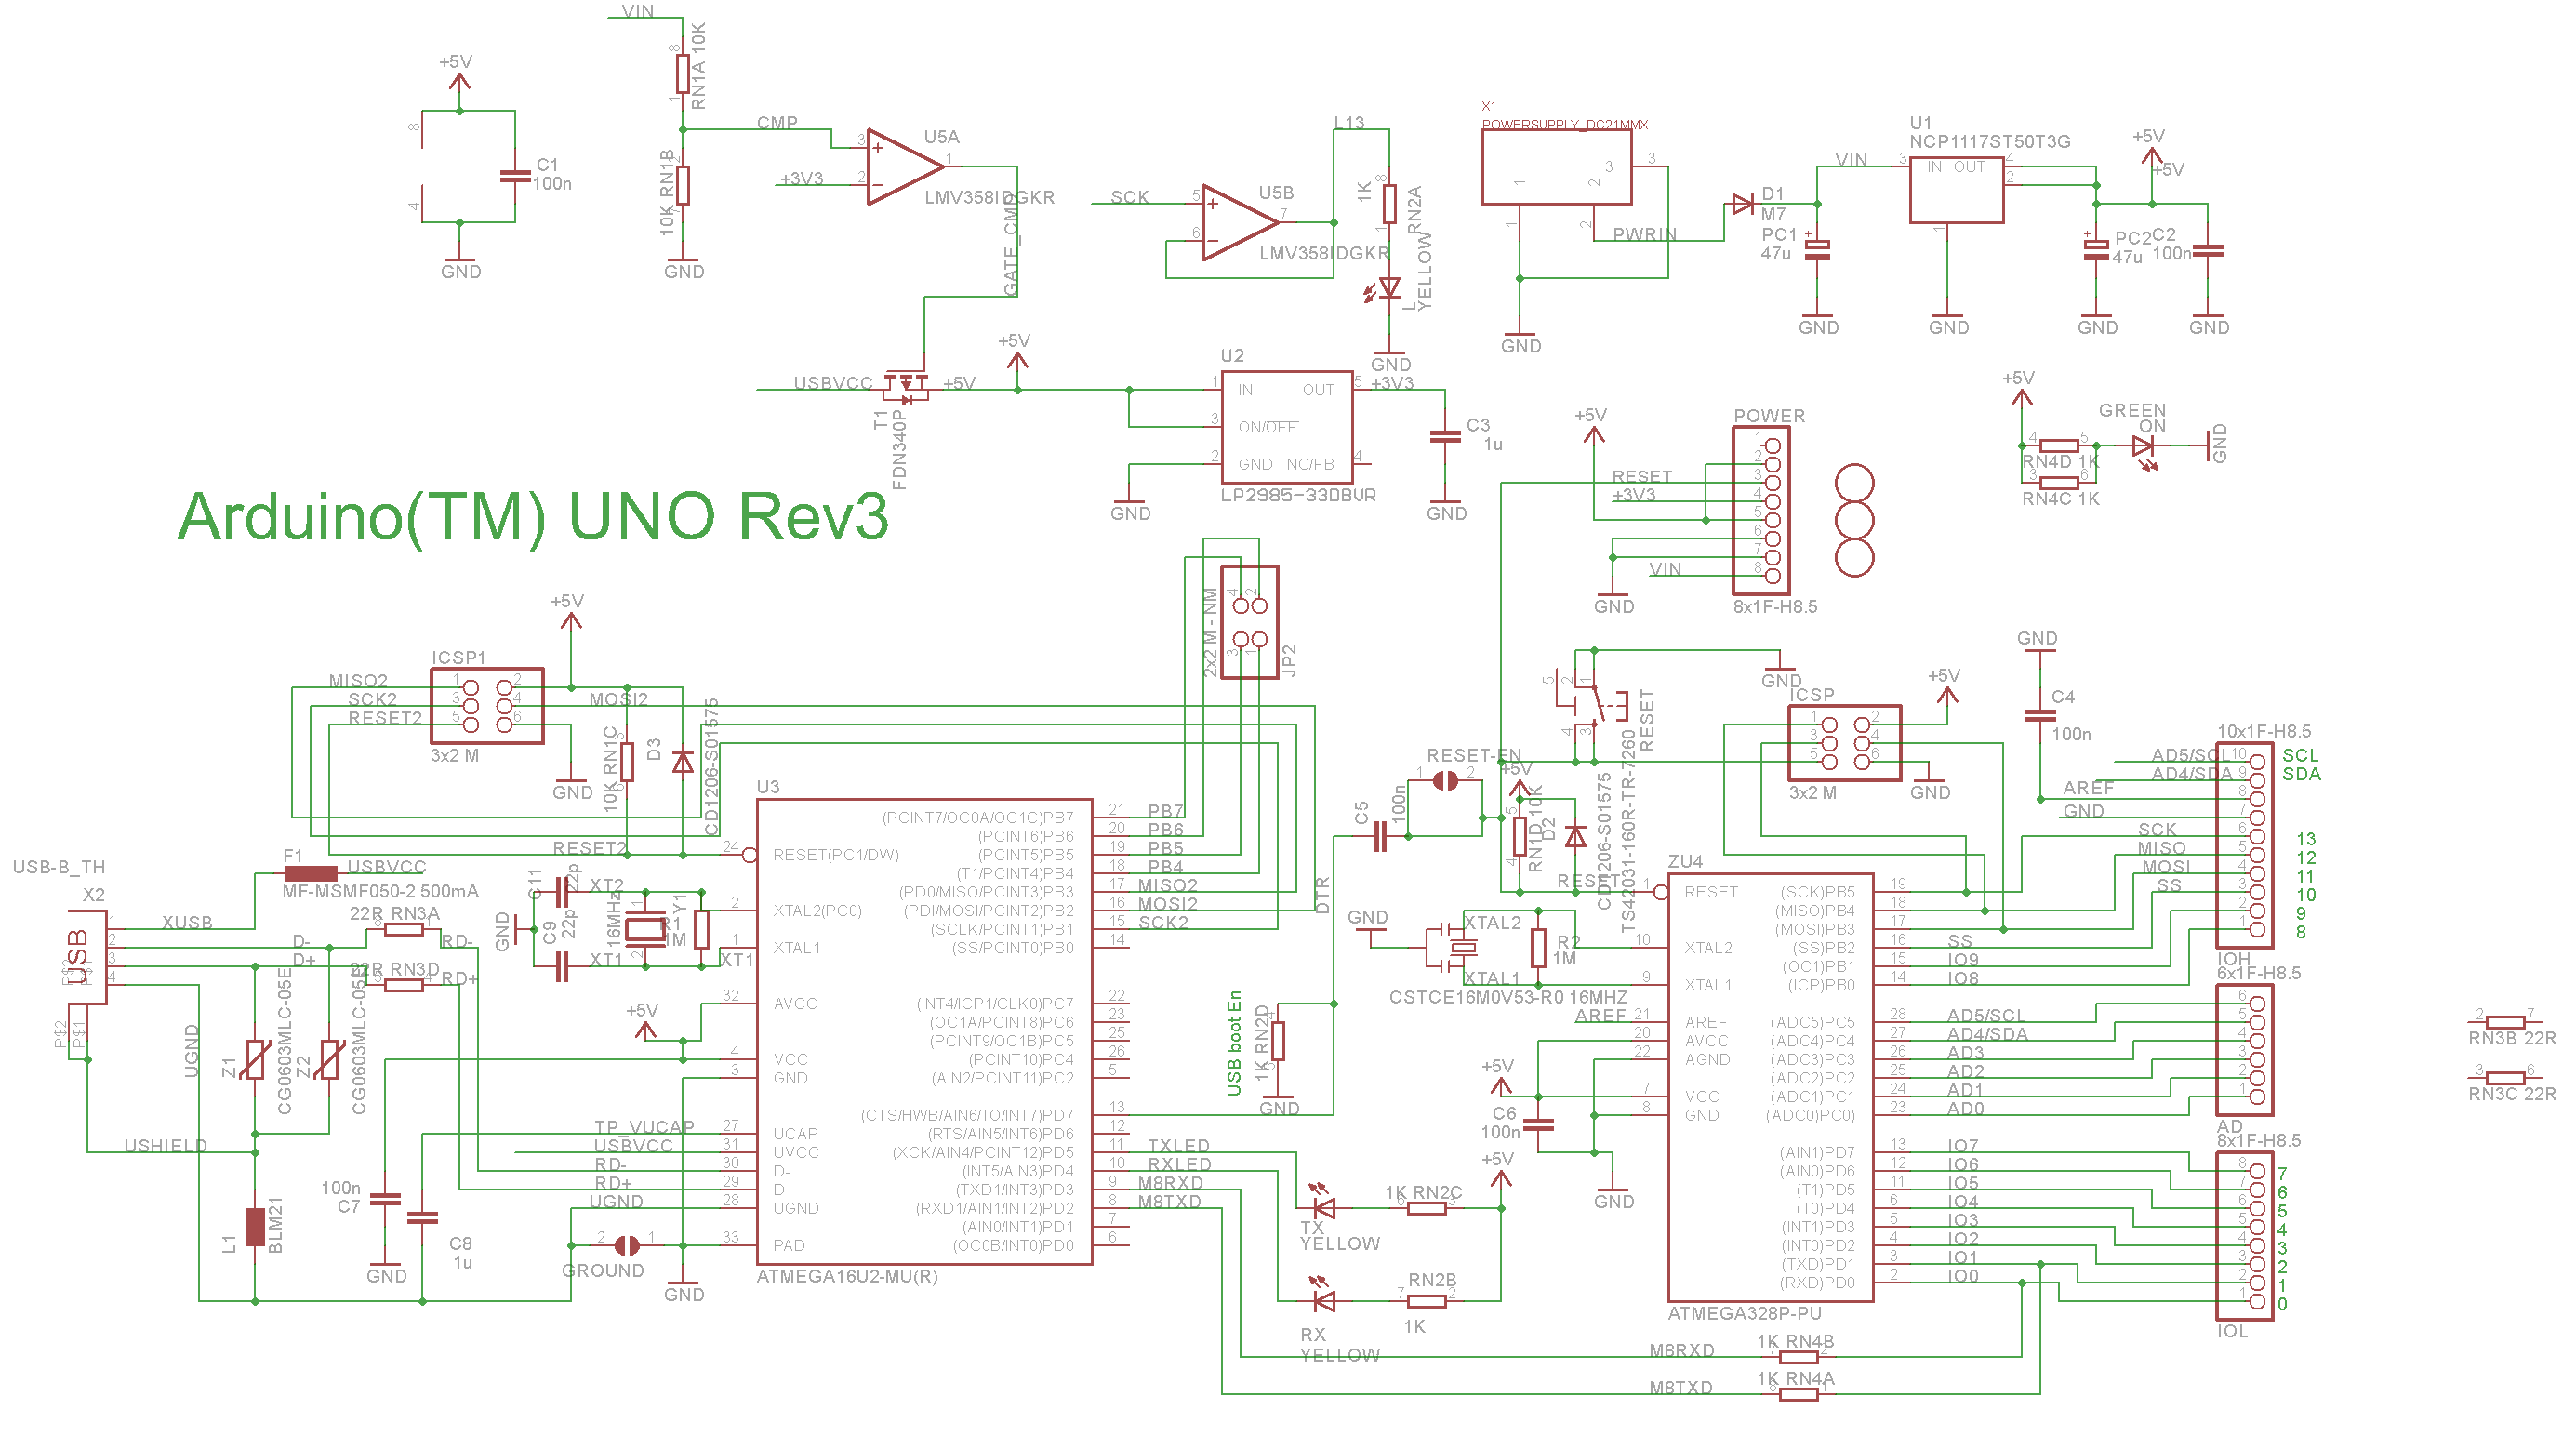 Introduction to Arduino UNO (uses AVR ATmega328 ...